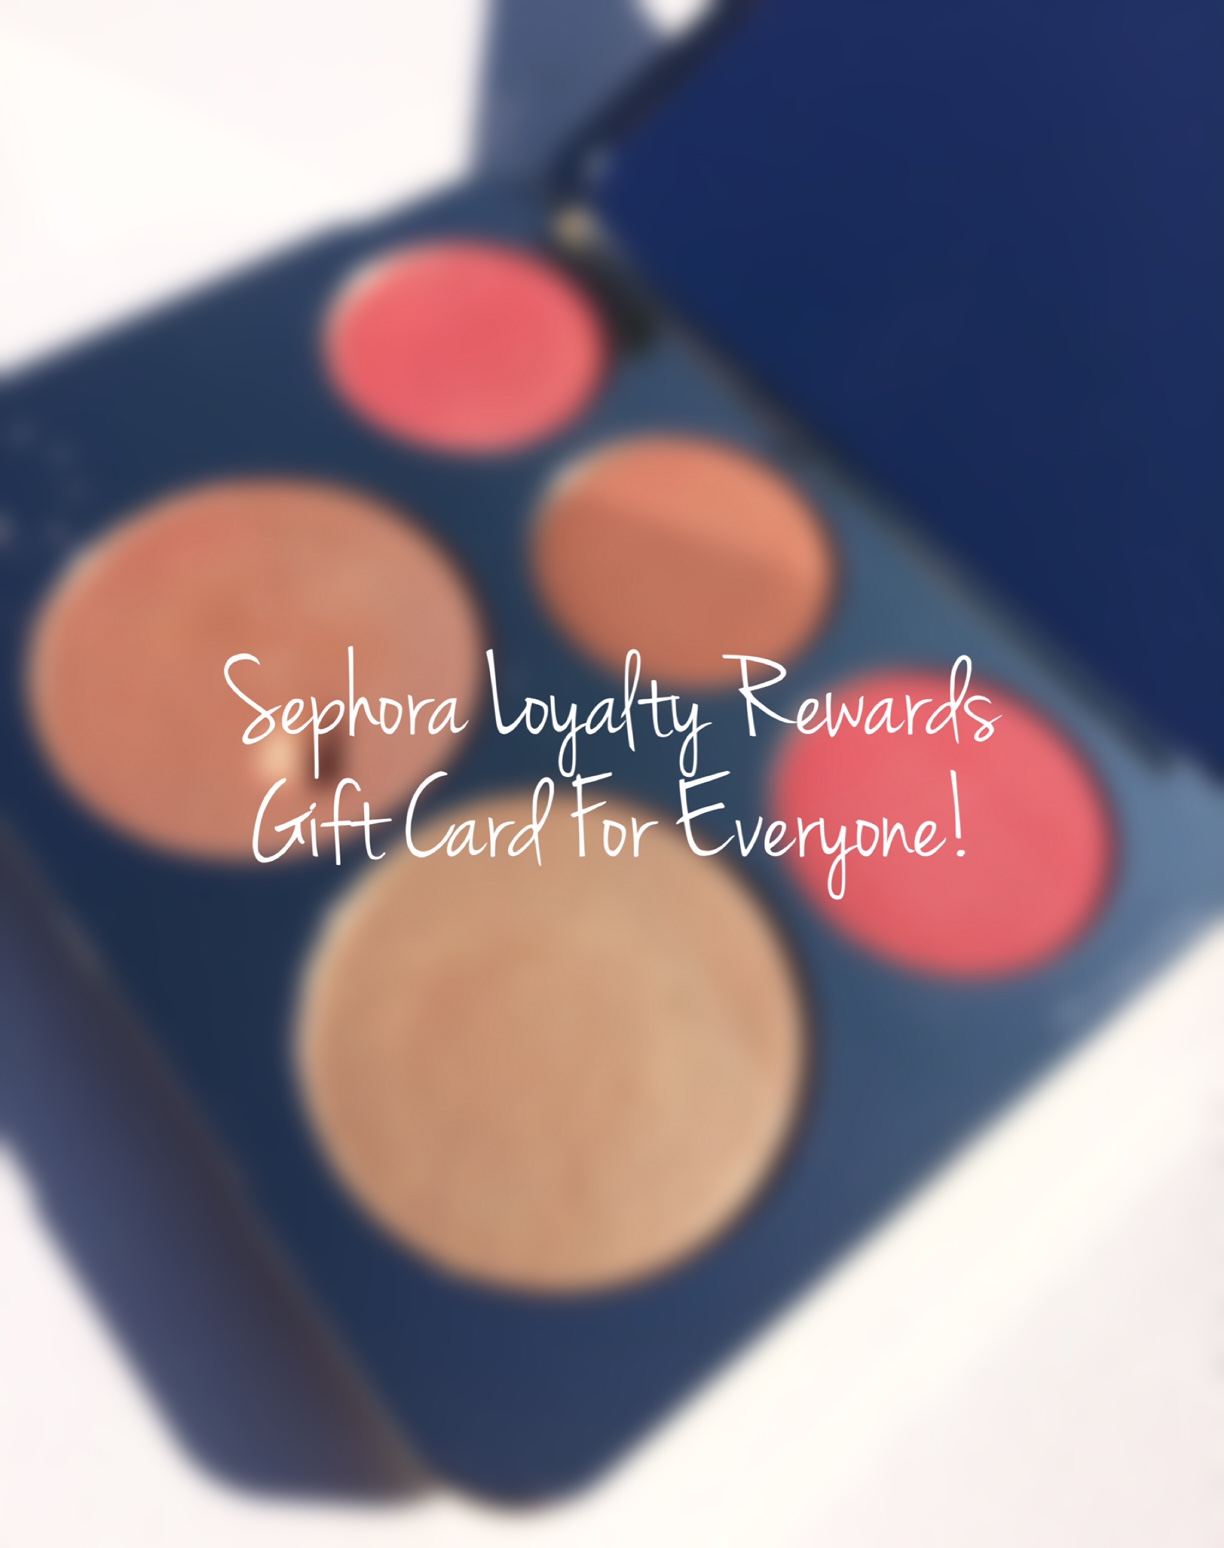 Sephora Loyalty Rewards Gift Card Coming Your Way I Know My Makeup